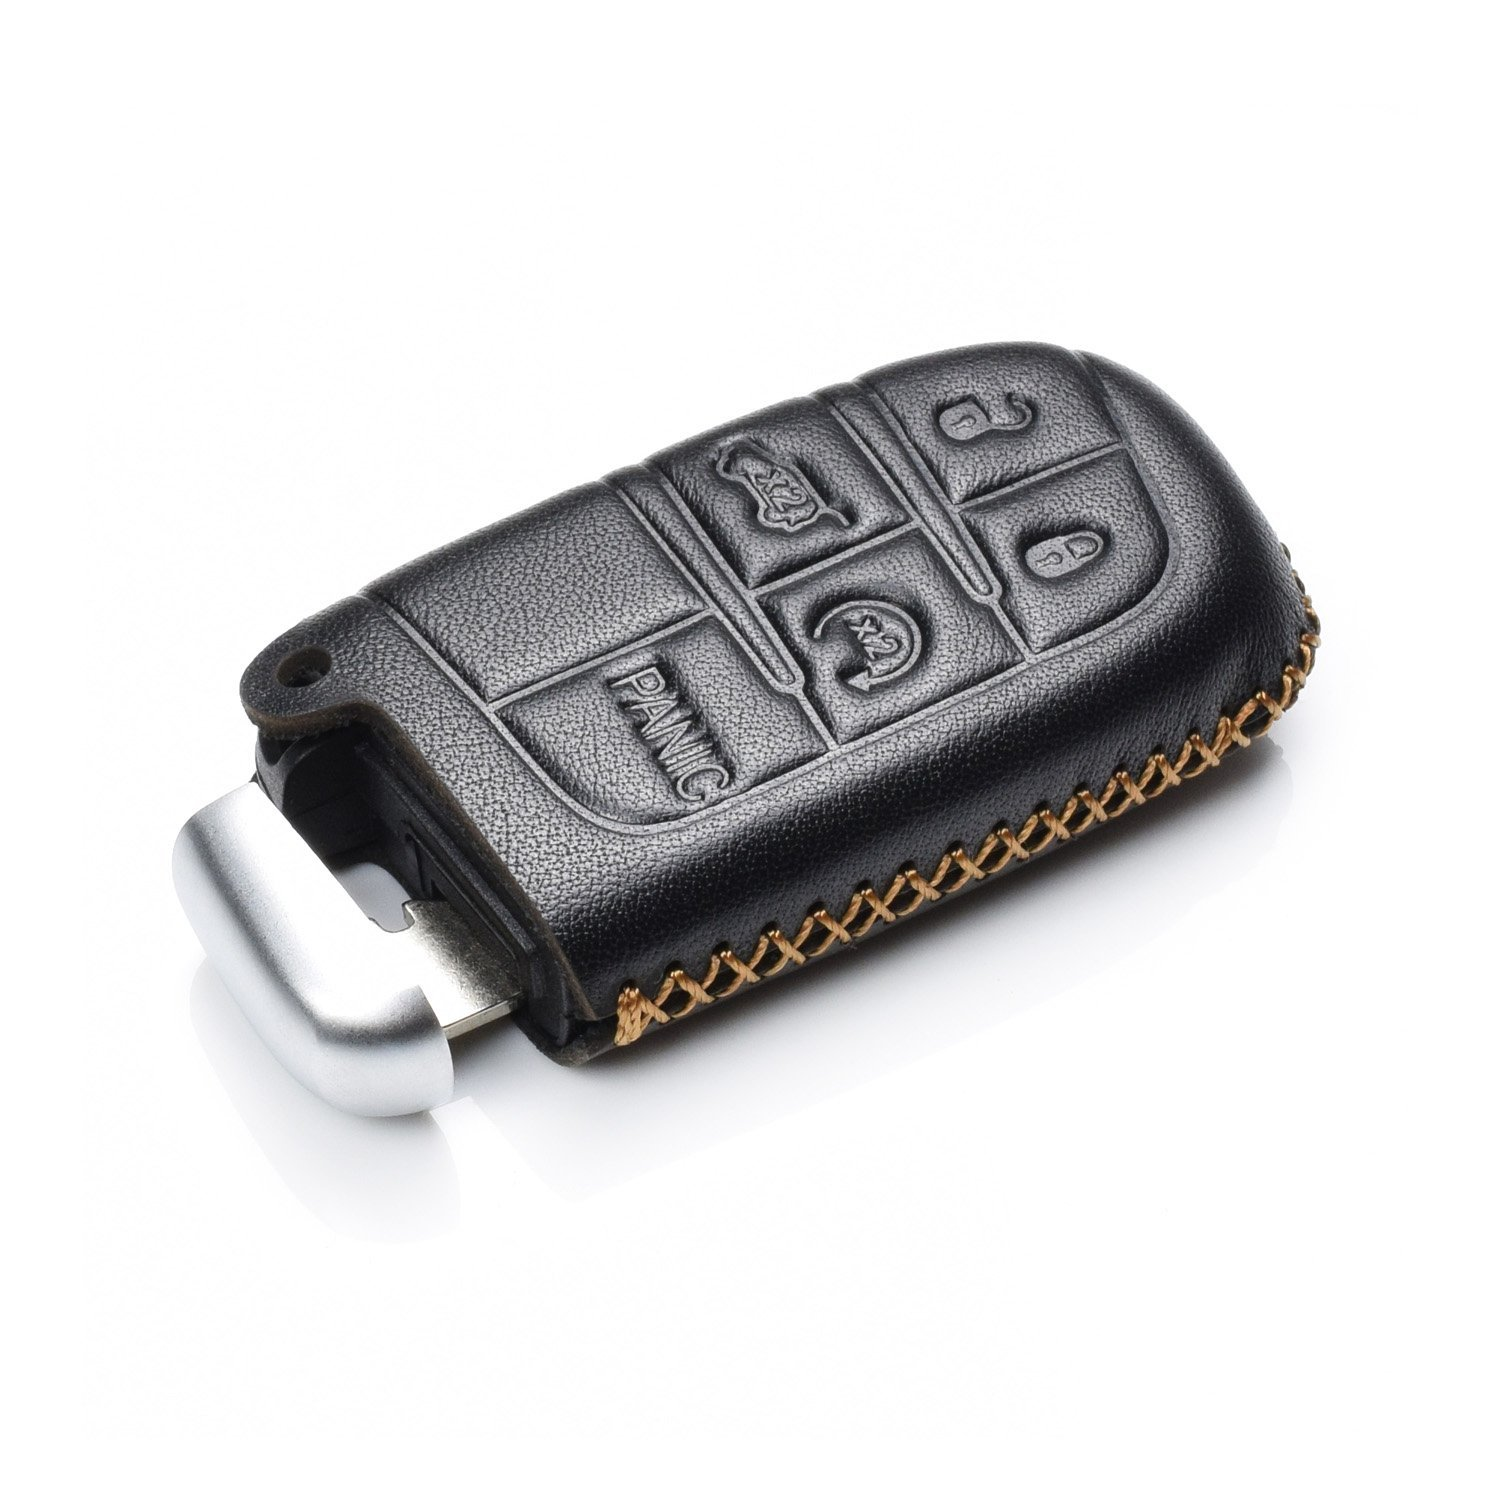 Chrysler Dodge Vitodeco Genuine Leather Smart Key Keyless Remote Entry Fob Case Cover with Key Chain for JEEP 5 Buttons, Black